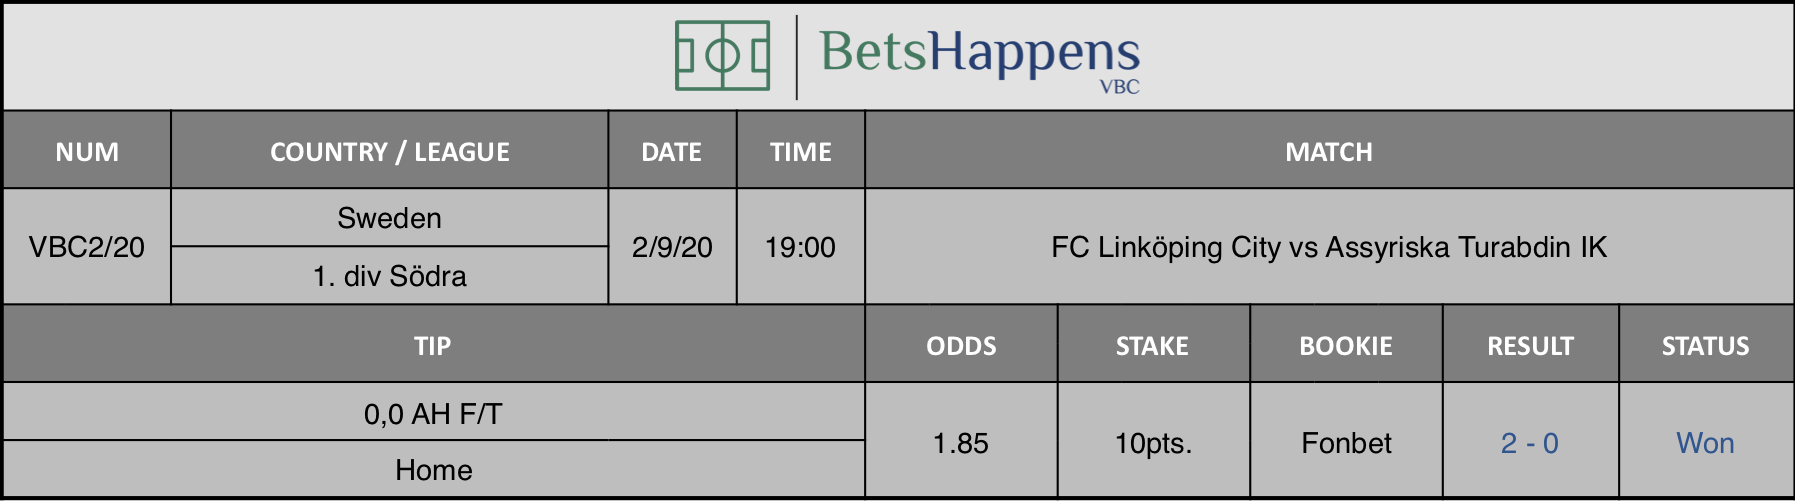 Results of our prediction for the match FC Linköping City vs Assyriska Turabdin IK in which 0.0 AH F / T Home is advised.